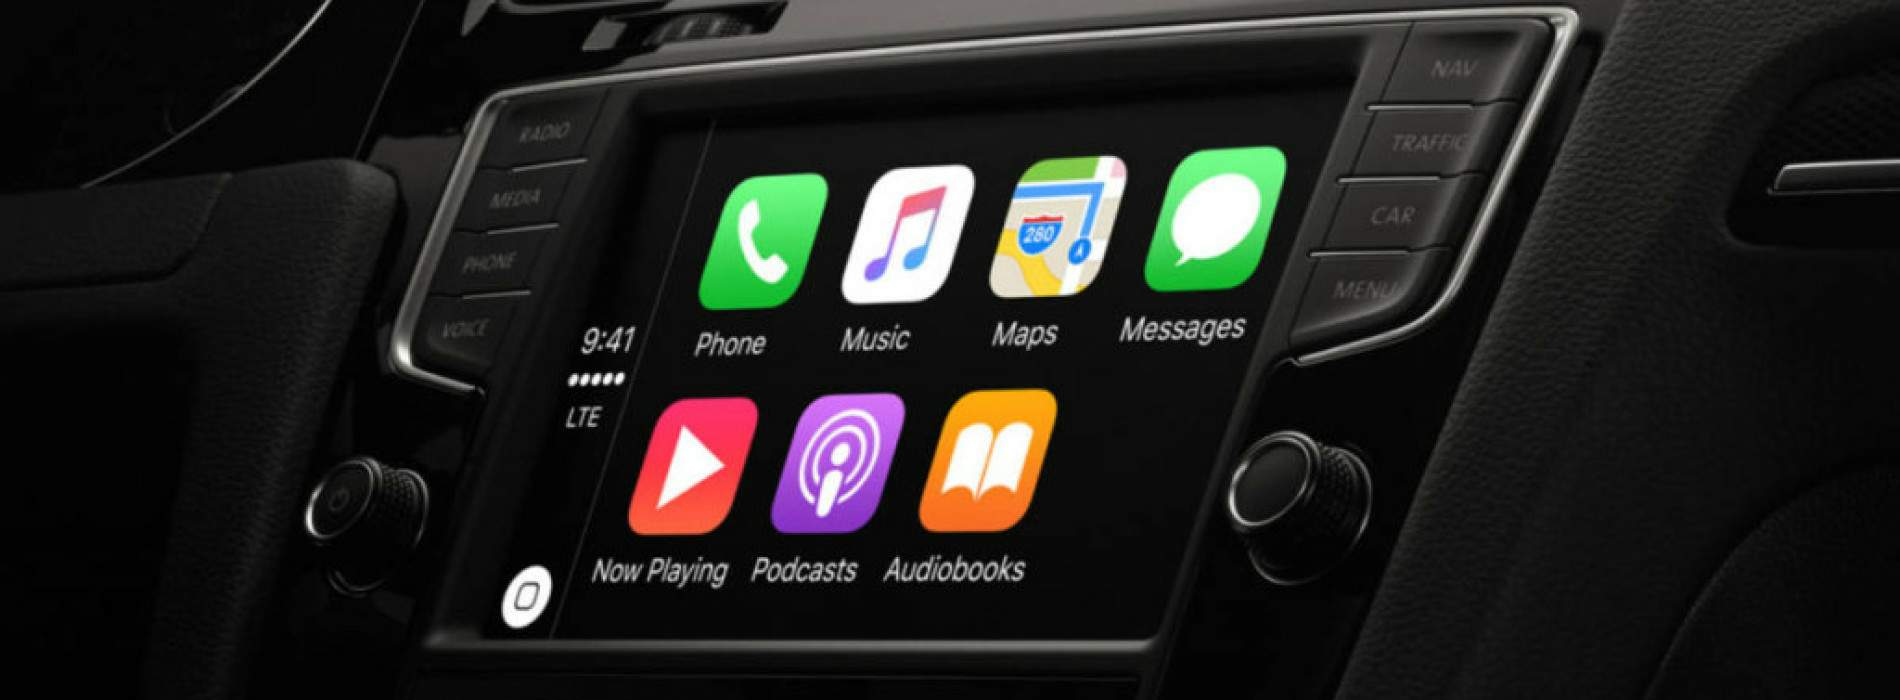 Android Auto vs. Carplay ¿Cuál es mejor?